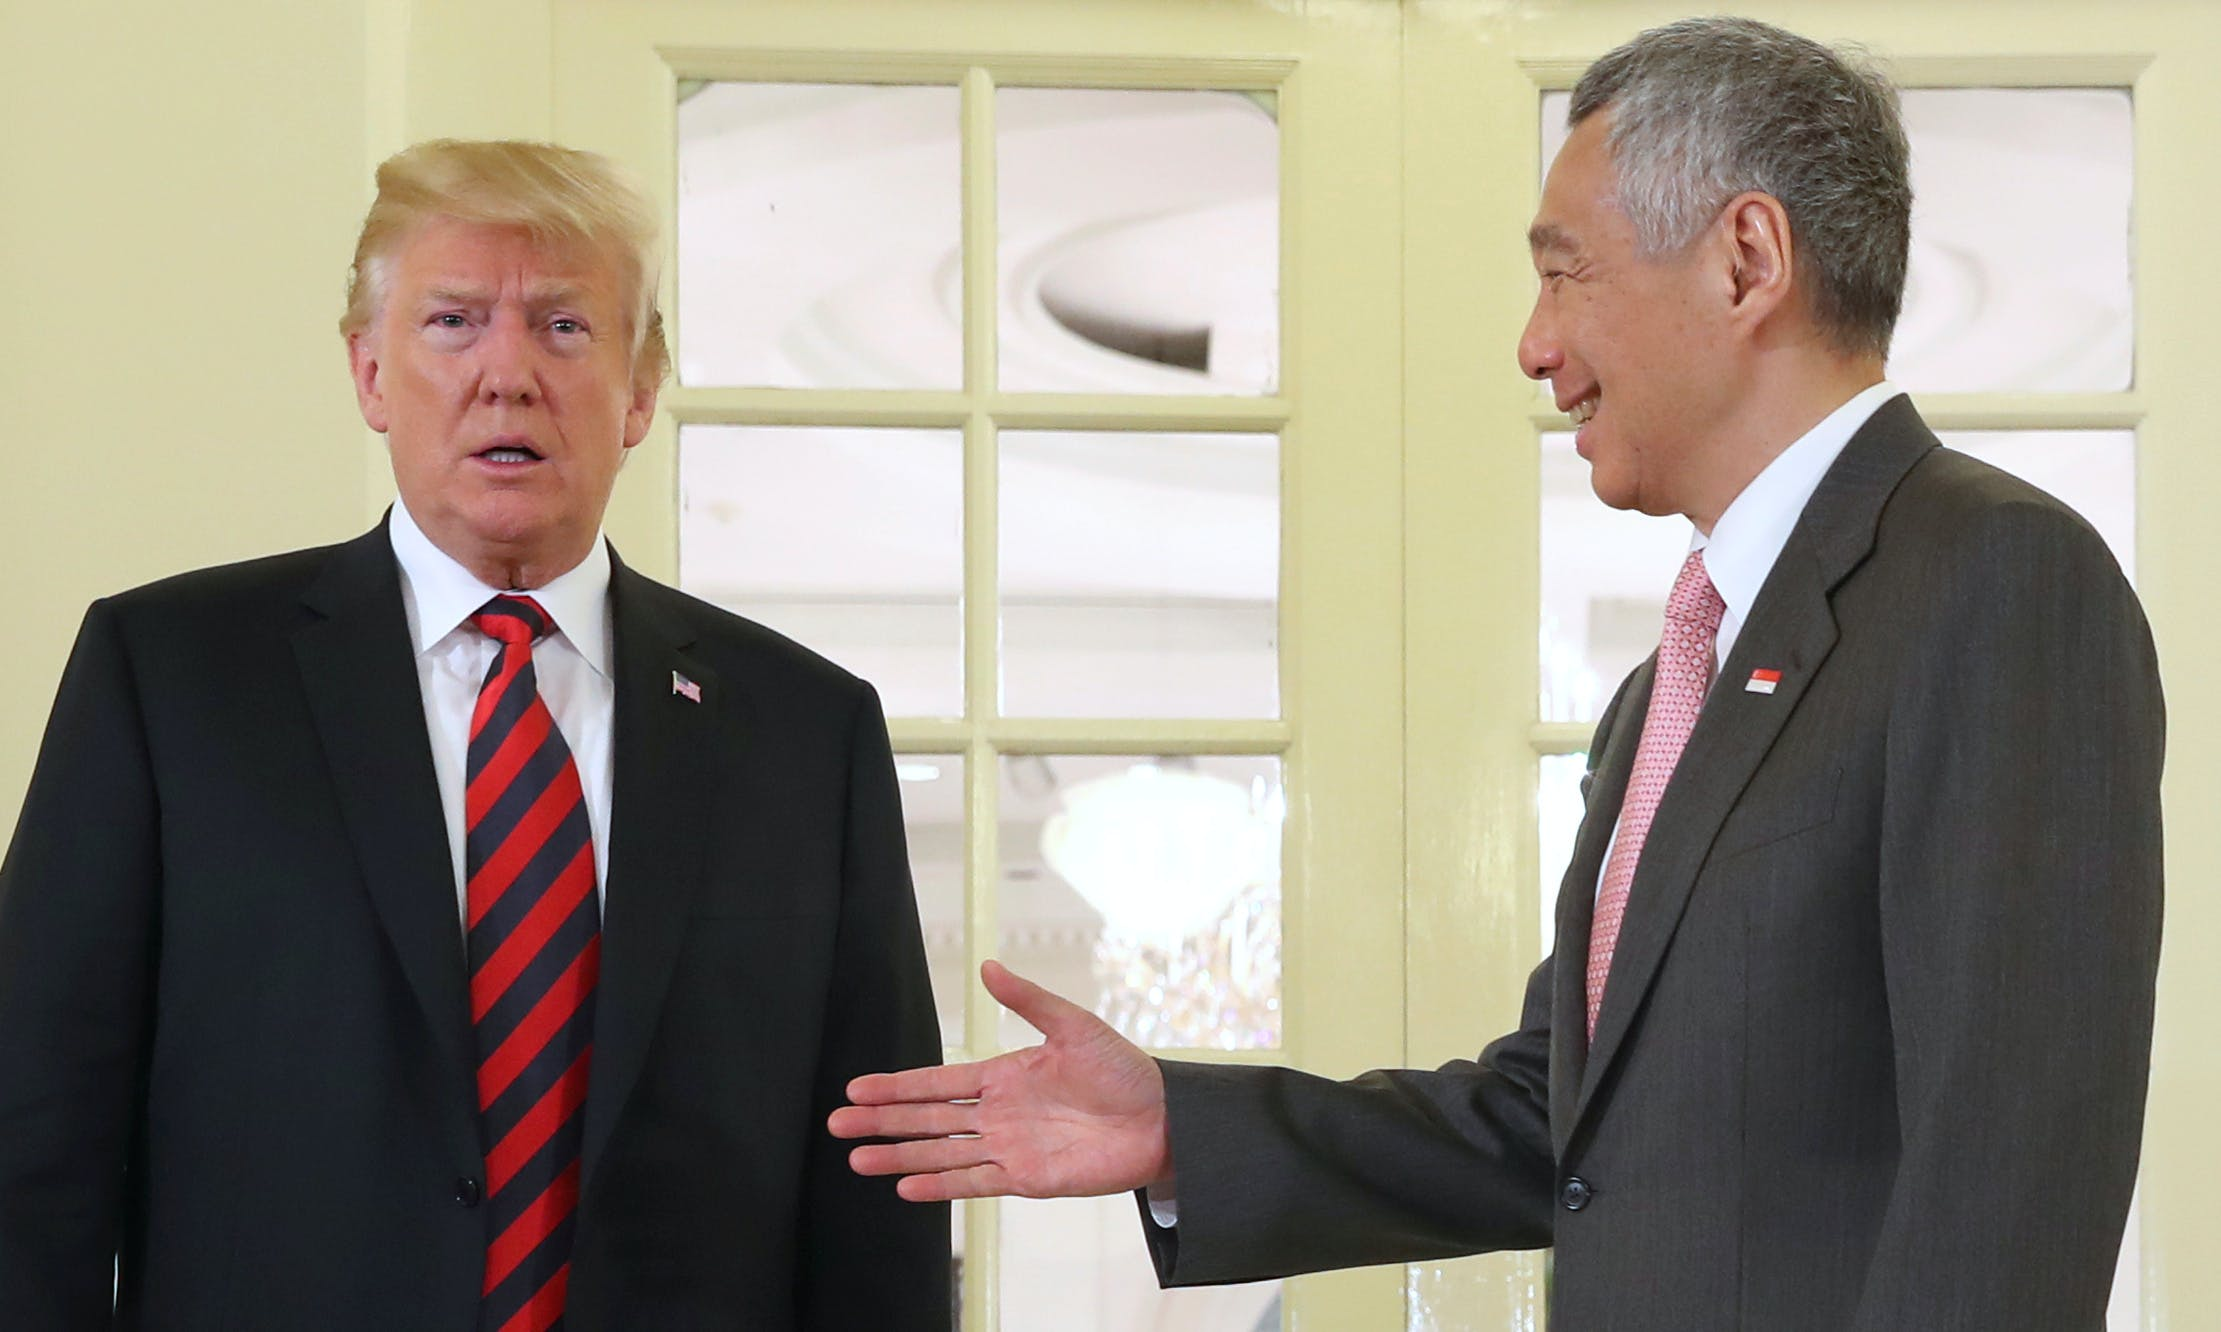 OPINION: Why I Oppose Singapore Hosting the Trump-Kim Summit